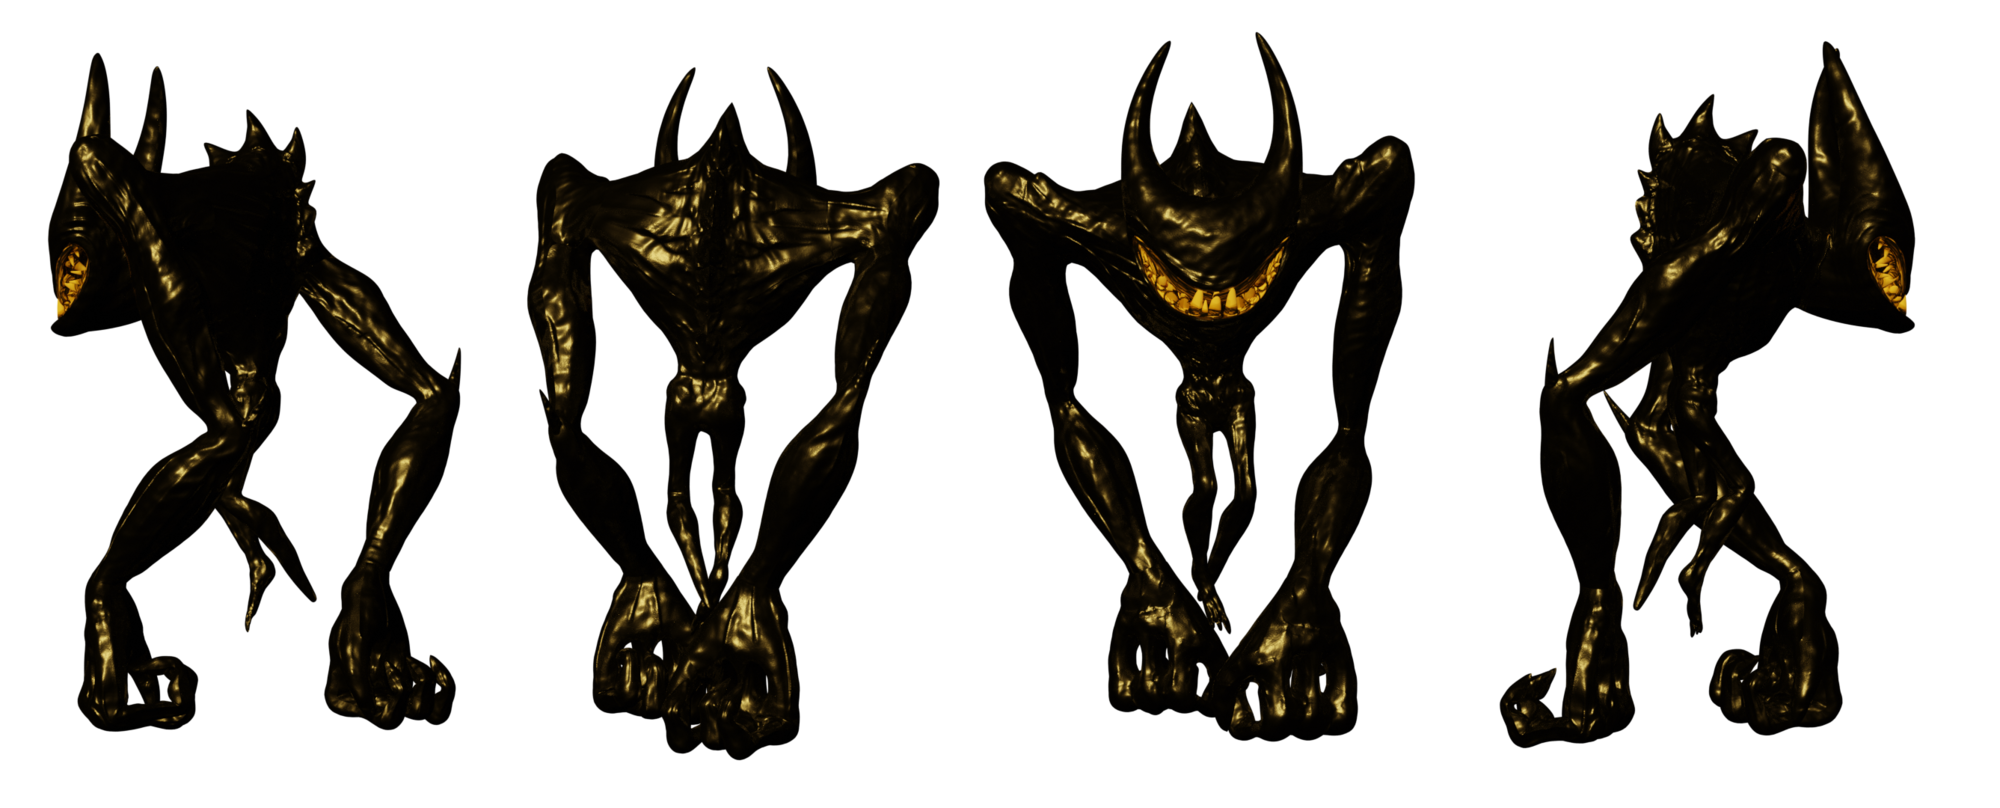 Beast BendyGallery Bendy Wiki FANDOM powered by Wikia 2000x808